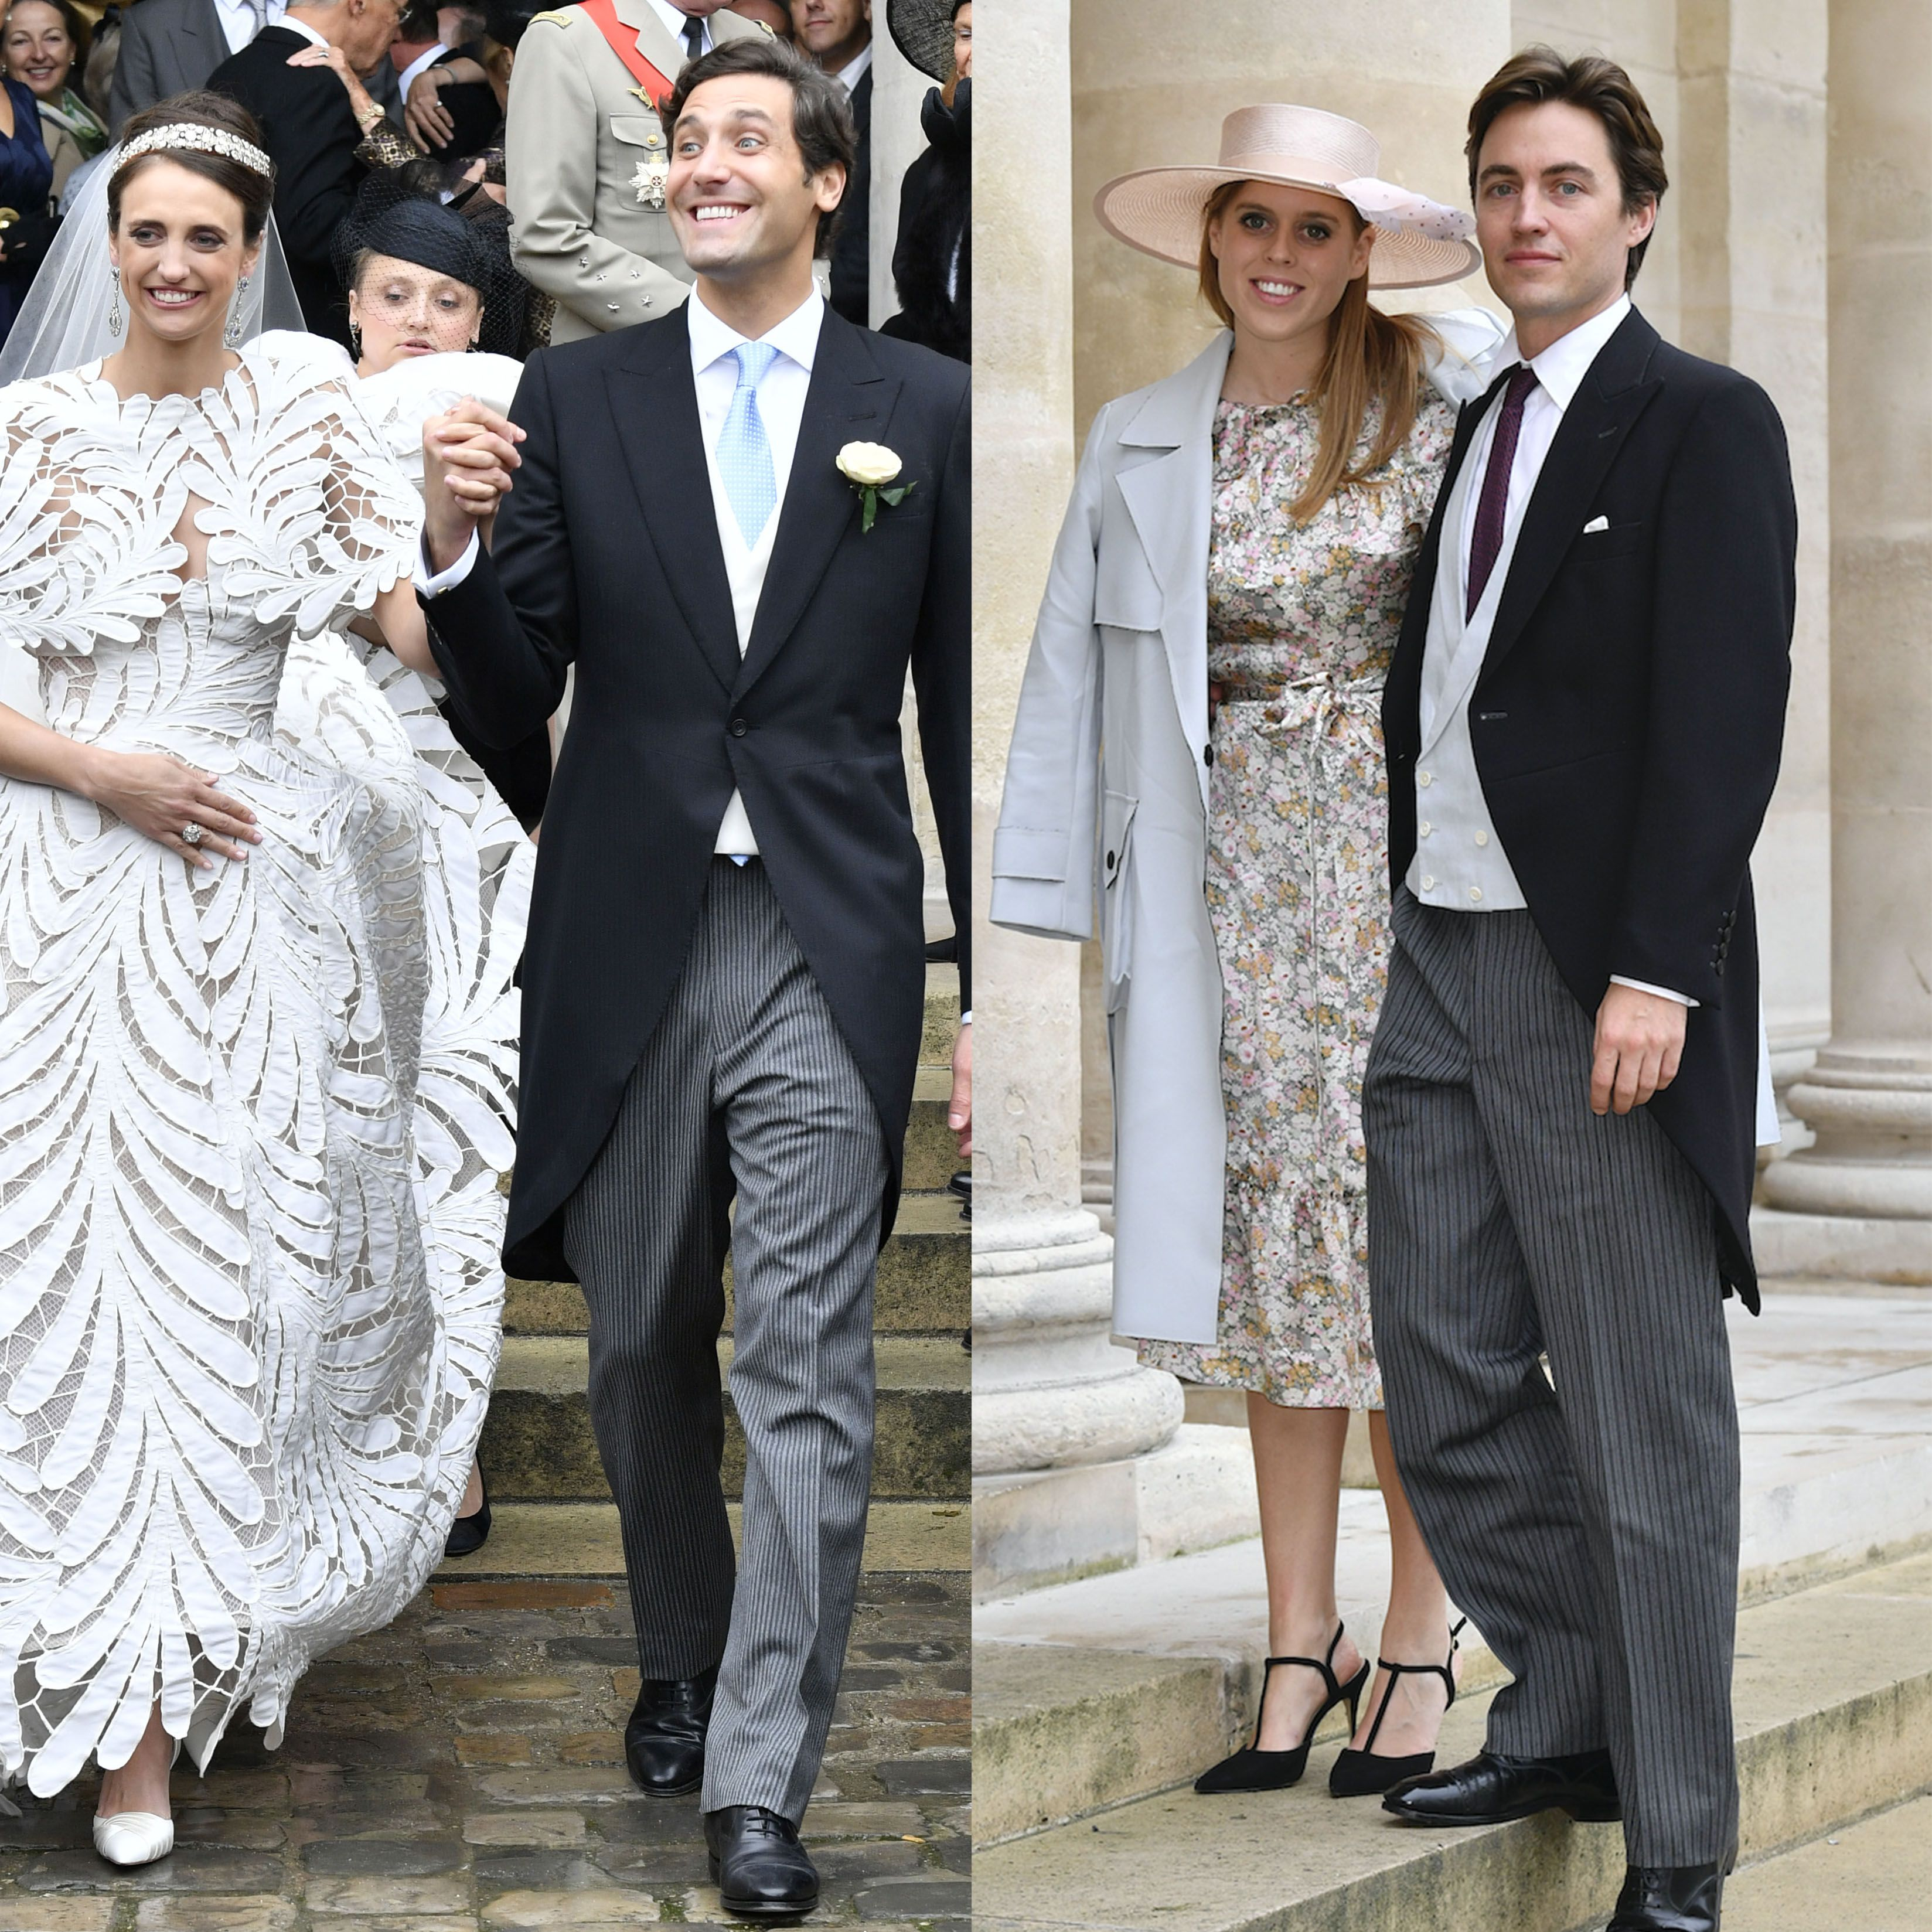 Princess Beatrice and her fiancé attend Prince Napoléon's wedding in Paris